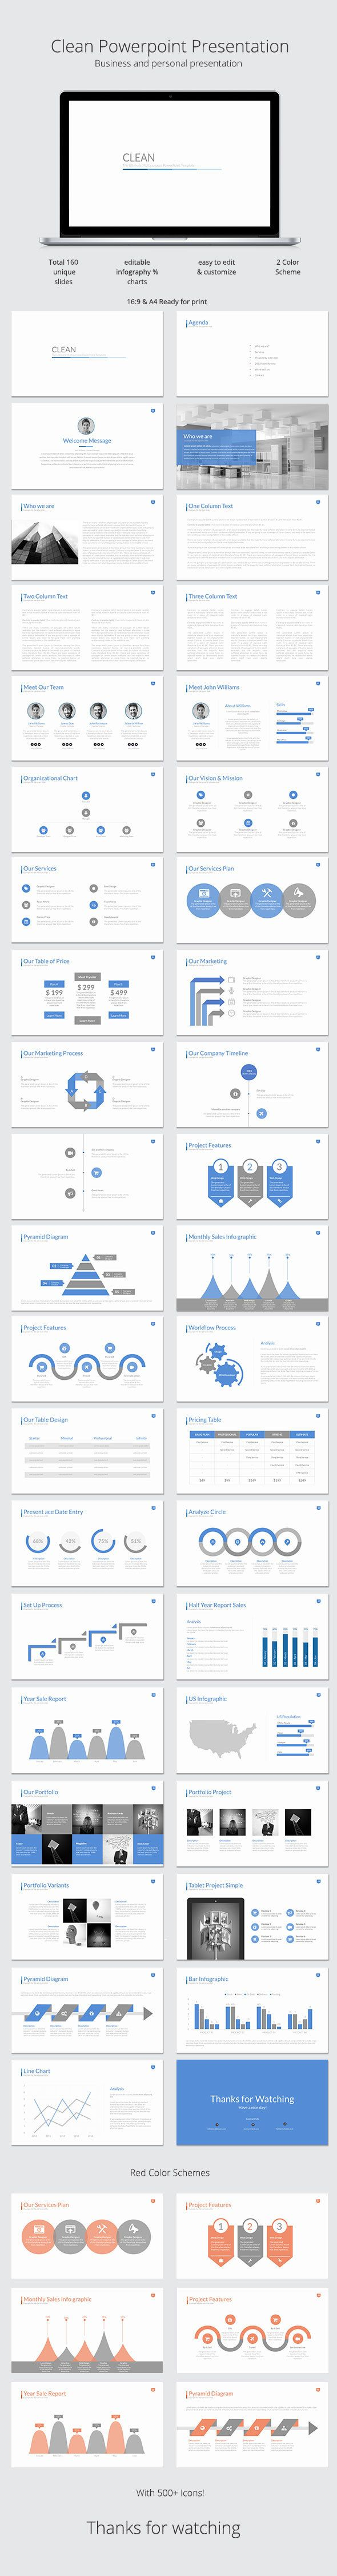 Usdgus  Pretty  Ideas About Powerpoint Presentations On Pinterest With Glamorous Clean Powerpoint Template With Breathtaking Matisse Cut Outs Powerpoint Also Business Graphics For Powerpoint In Addition Powerpoint  Watermark And Powerpoint Presentation Of Global Warming As Well As Amazing Powerpoint Presentations Templates Additionally Molecular Biology Powerpoint From Pinterestcom With Usdgus  Glamorous  Ideas About Powerpoint Presentations On Pinterest With Breathtaking Clean Powerpoint Template And Pretty Matisse Cut Outs Powerpoint Also Business Graphics For Powerpoint In Addition Powerpoint  Watermark From Pinterestcom